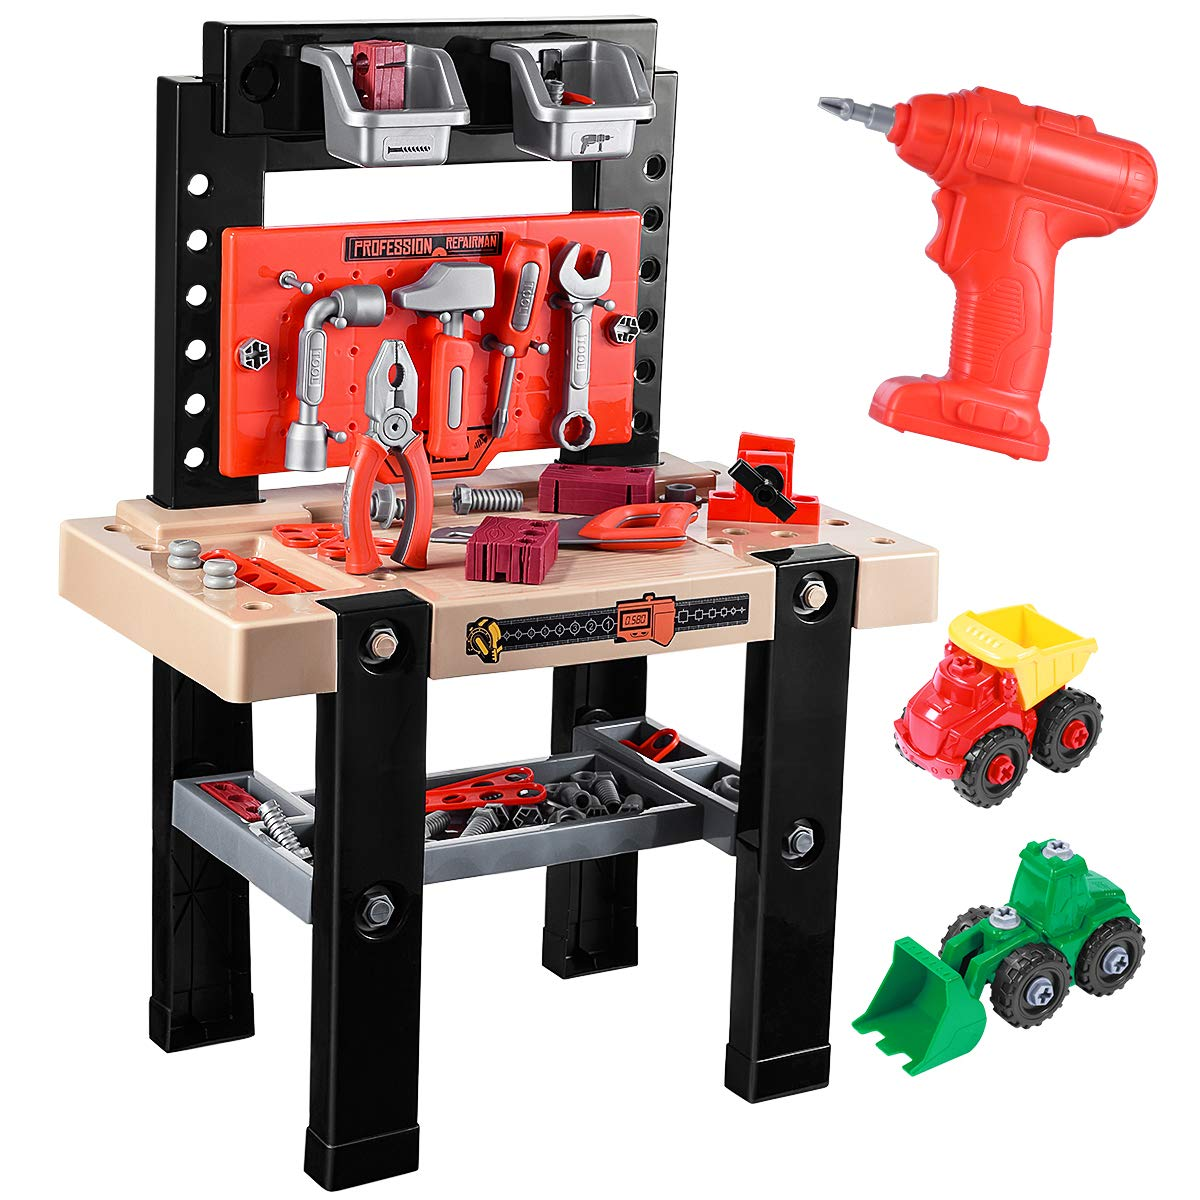 iBaseToy Toy Tool Bench, Kids Power Workbench, 91Piece Construction Toy Bench Set with Electric Drill, Educational Play & Pretend Play Workbench for Toddlers by iBaseToy (Image #1)